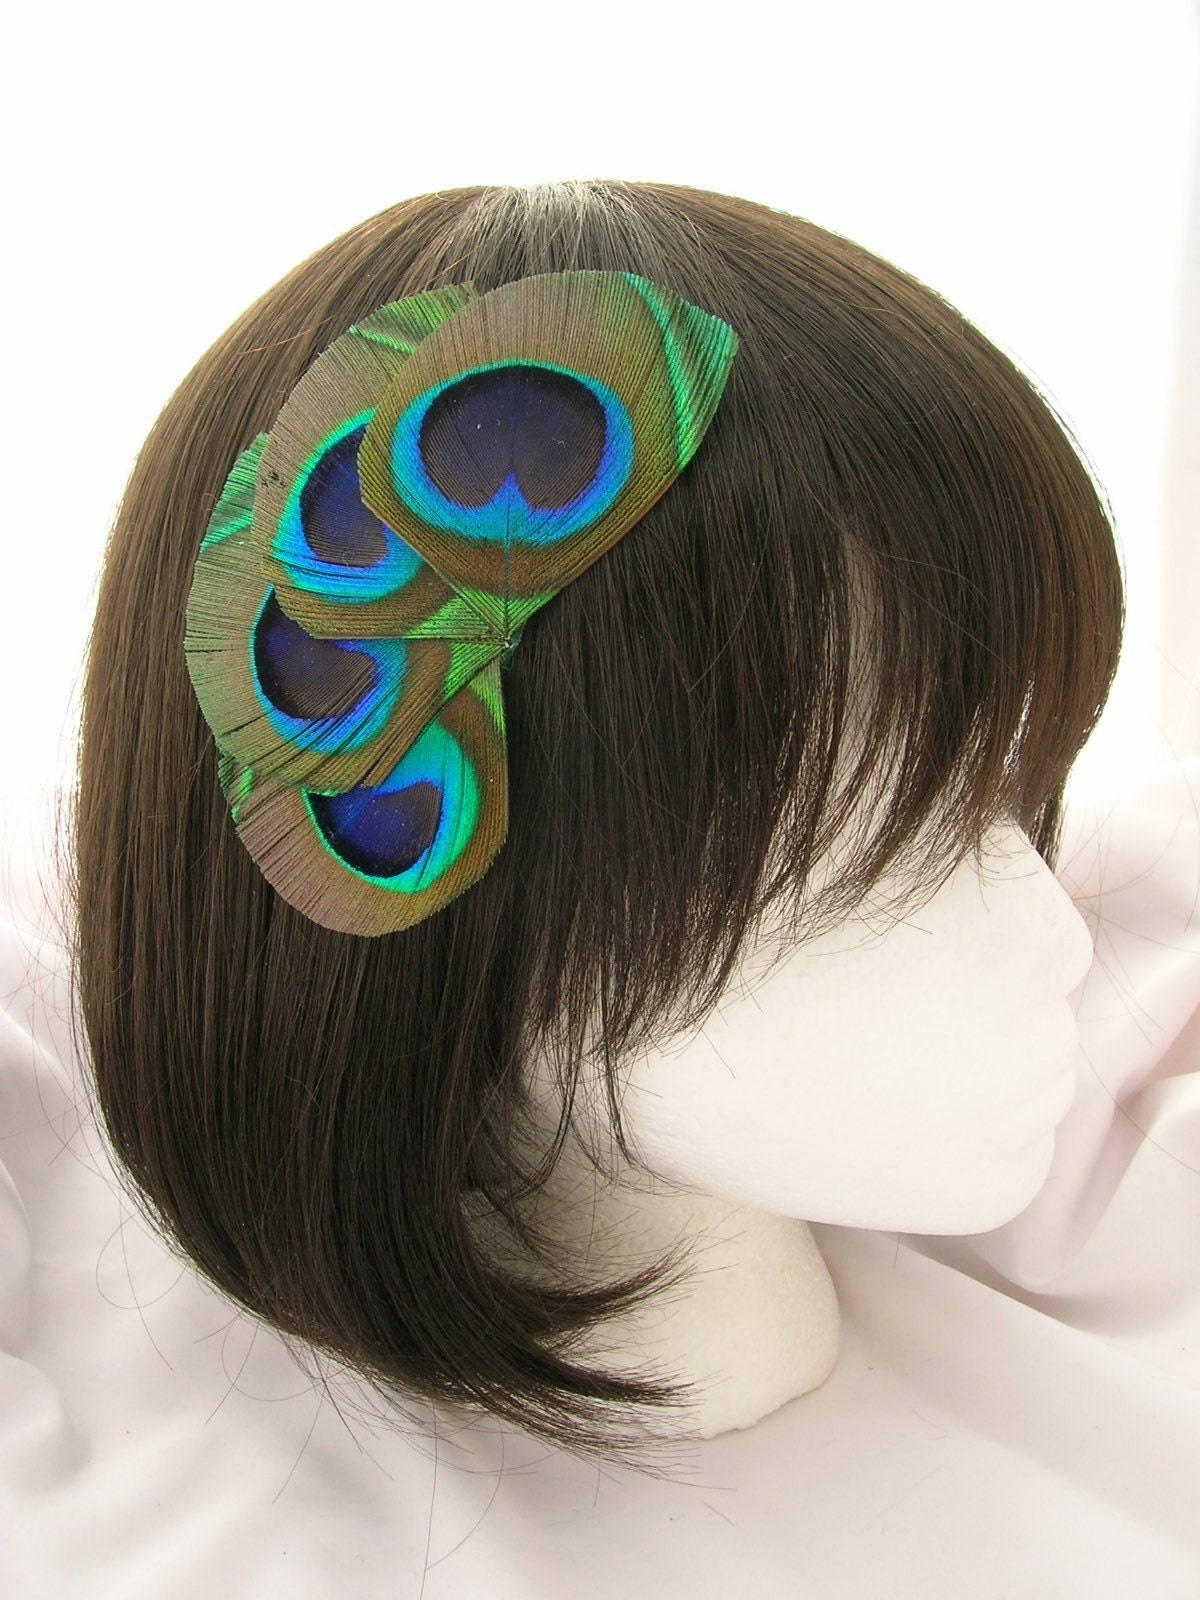 Hera Design peacock eyes feather fascinator - fan style headdress - headband, hair clip, elastic band, or comb your choice